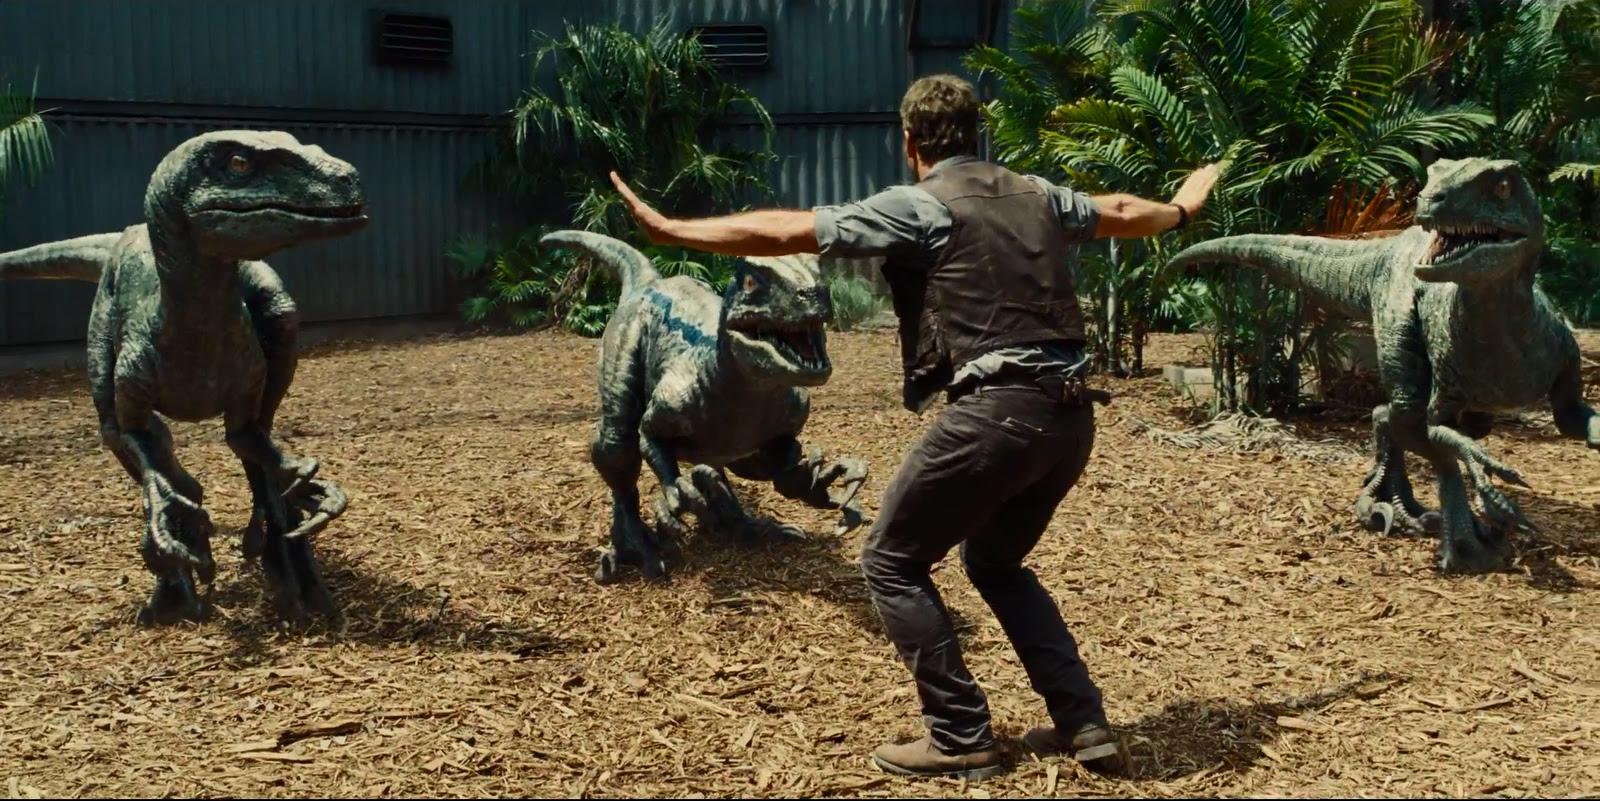 http://cinescopia.com/wp-content/uploads/2015/06/chris-pratt-velociraptor-jurassic-world-Gamers.jpg